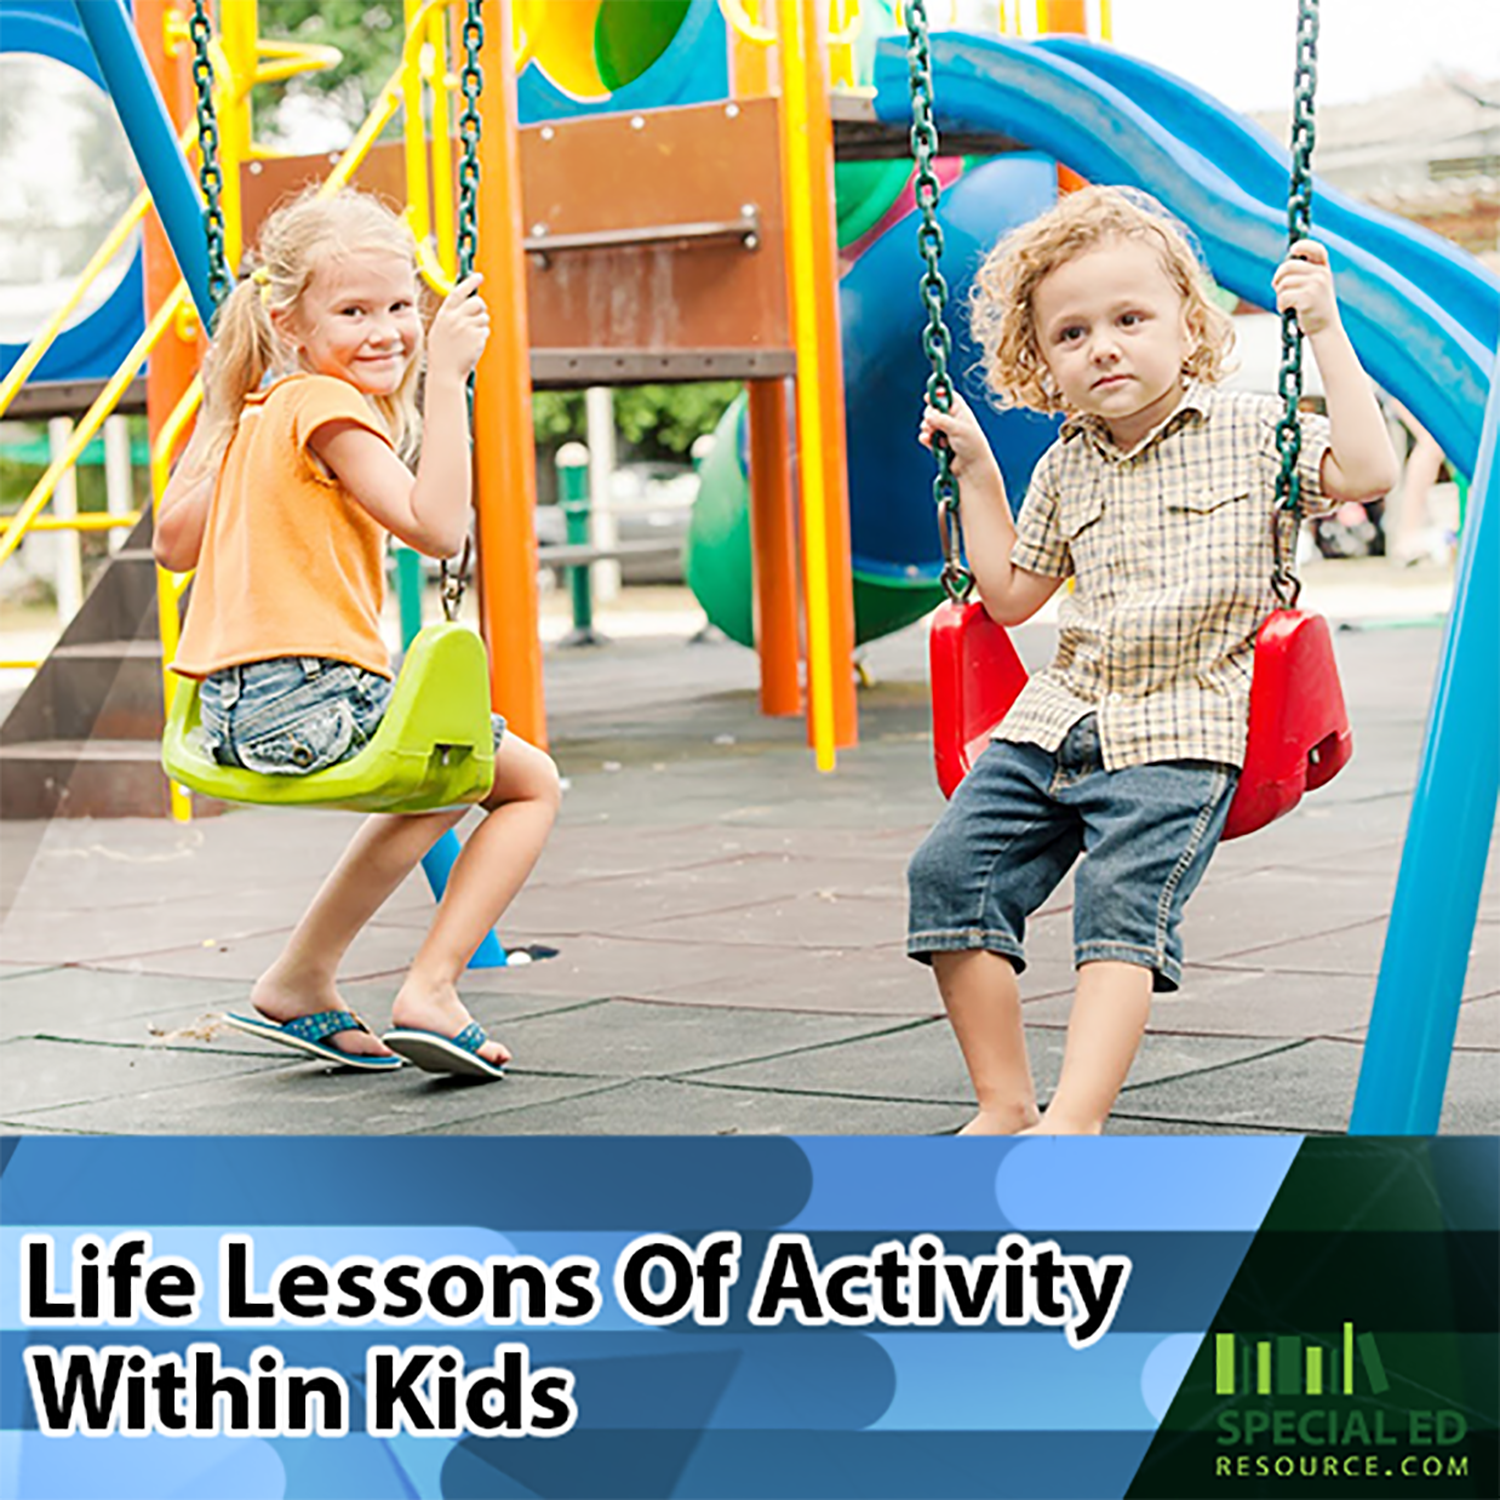 Life Lessons Of Activity Within Kids